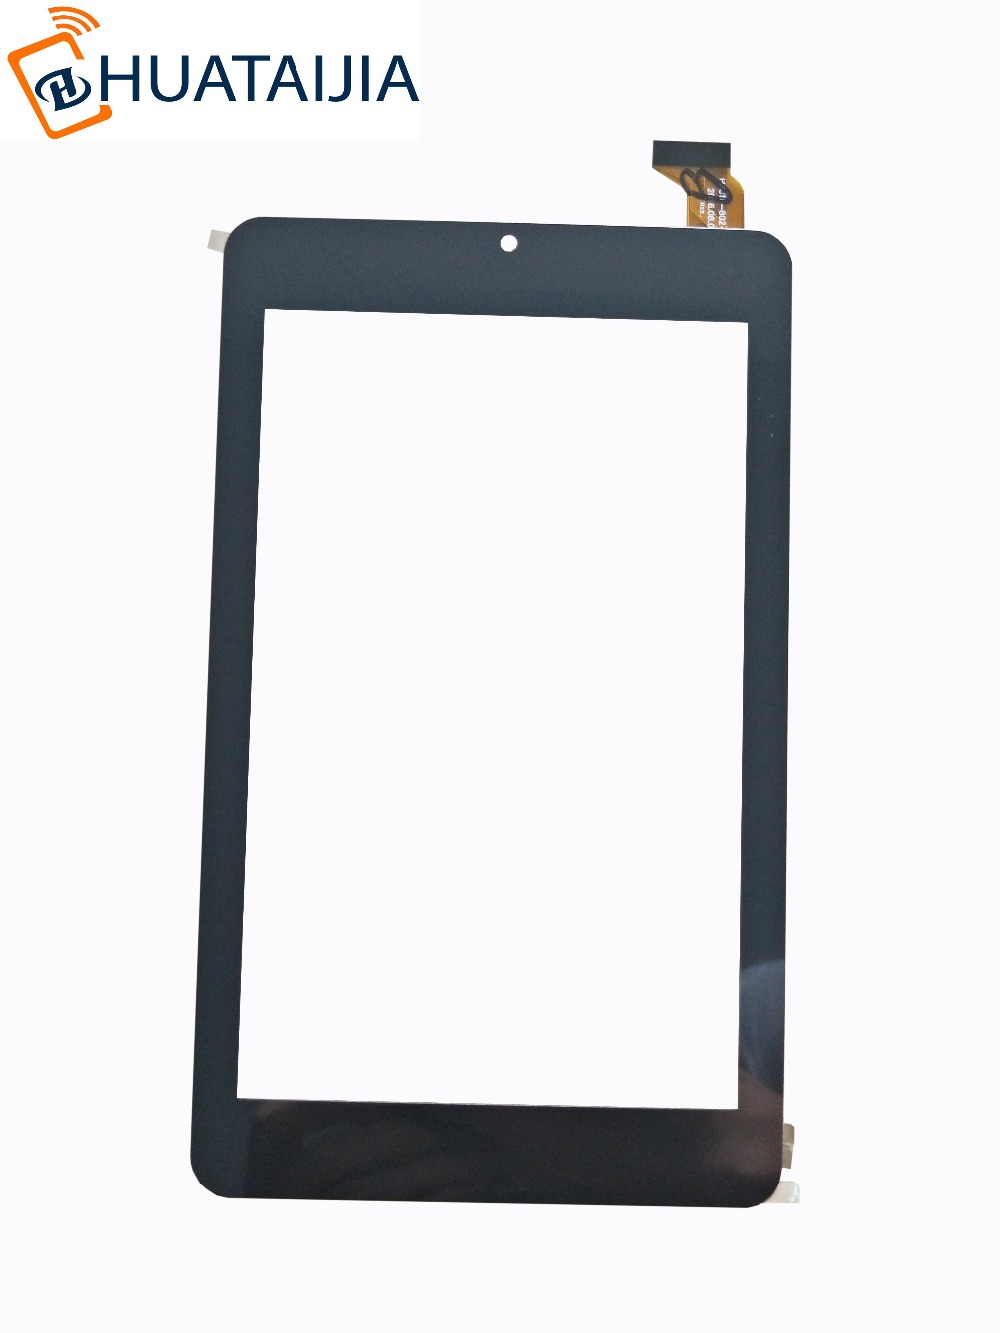 New Capacitive touch screen For 7 Irbis TZ04 TZ 04 Irbis TZ05 TZ 05 Touch Panel Digitizer Sensor Replacement Free Shipping new capacitive touch screen for 7 irbis tz 04 tz04 tz05 tz 05 tablet panel digitizer glass sensor replacement free shipping